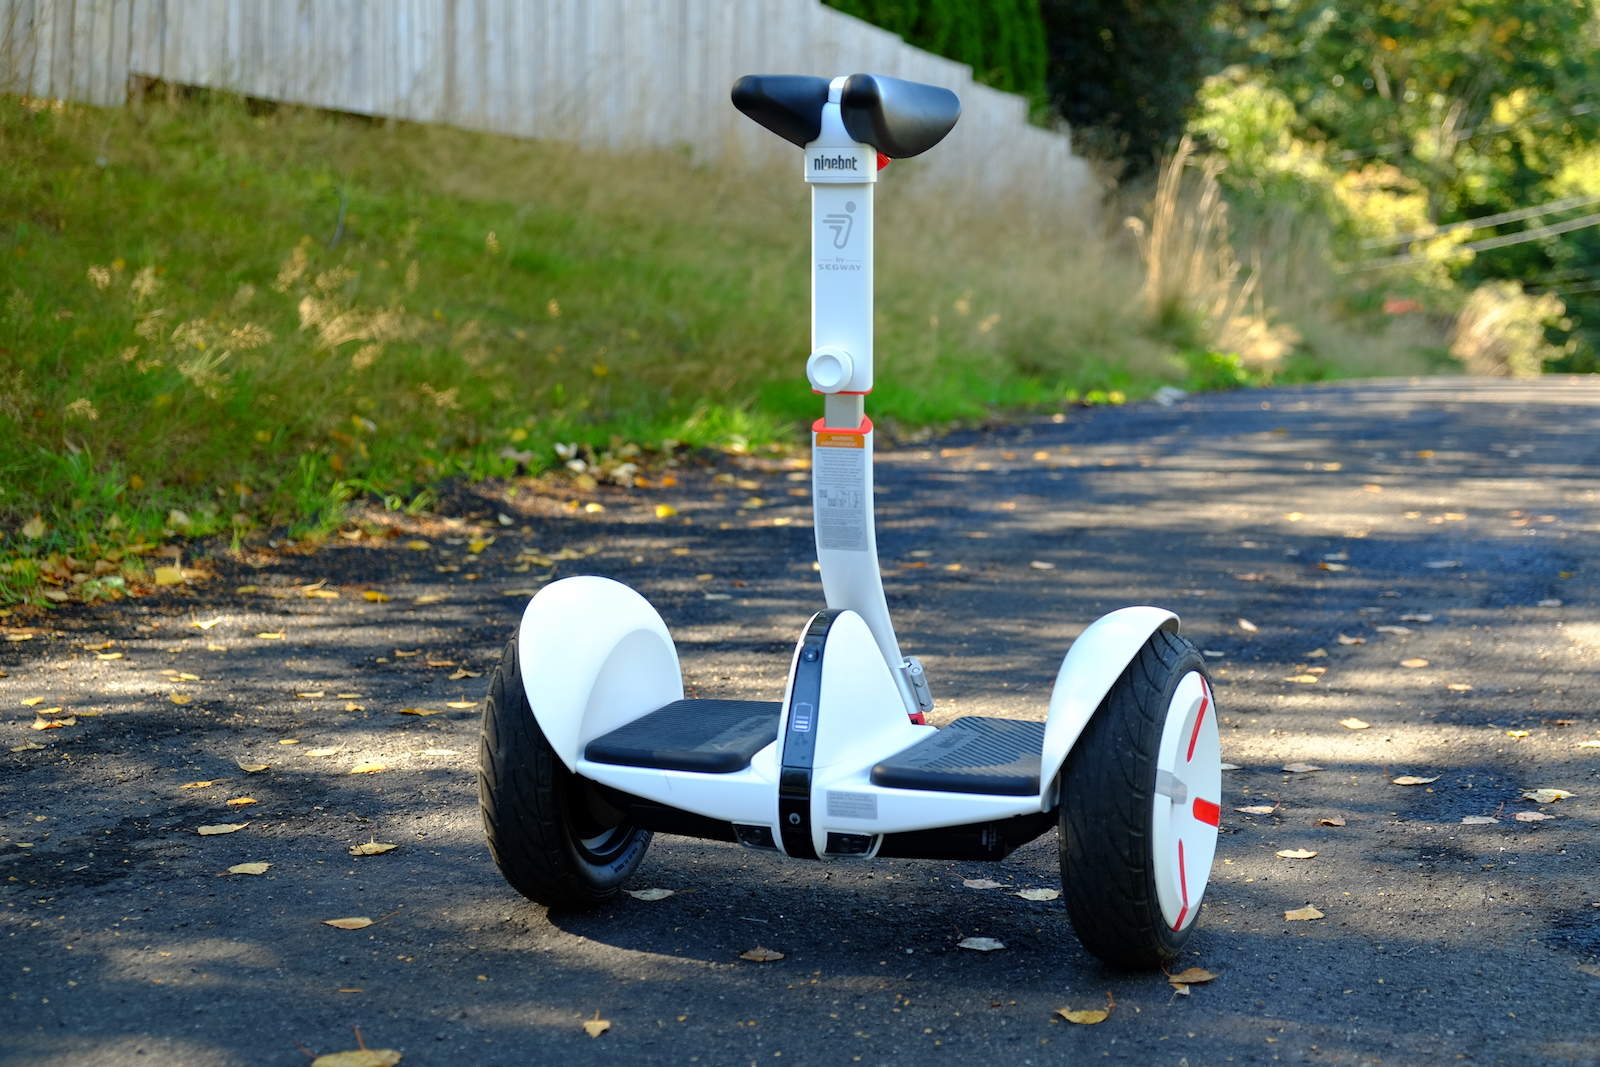 Ninebot By Segway Minipro >> Segway miniPRO review: This machine makes hoverboards great again